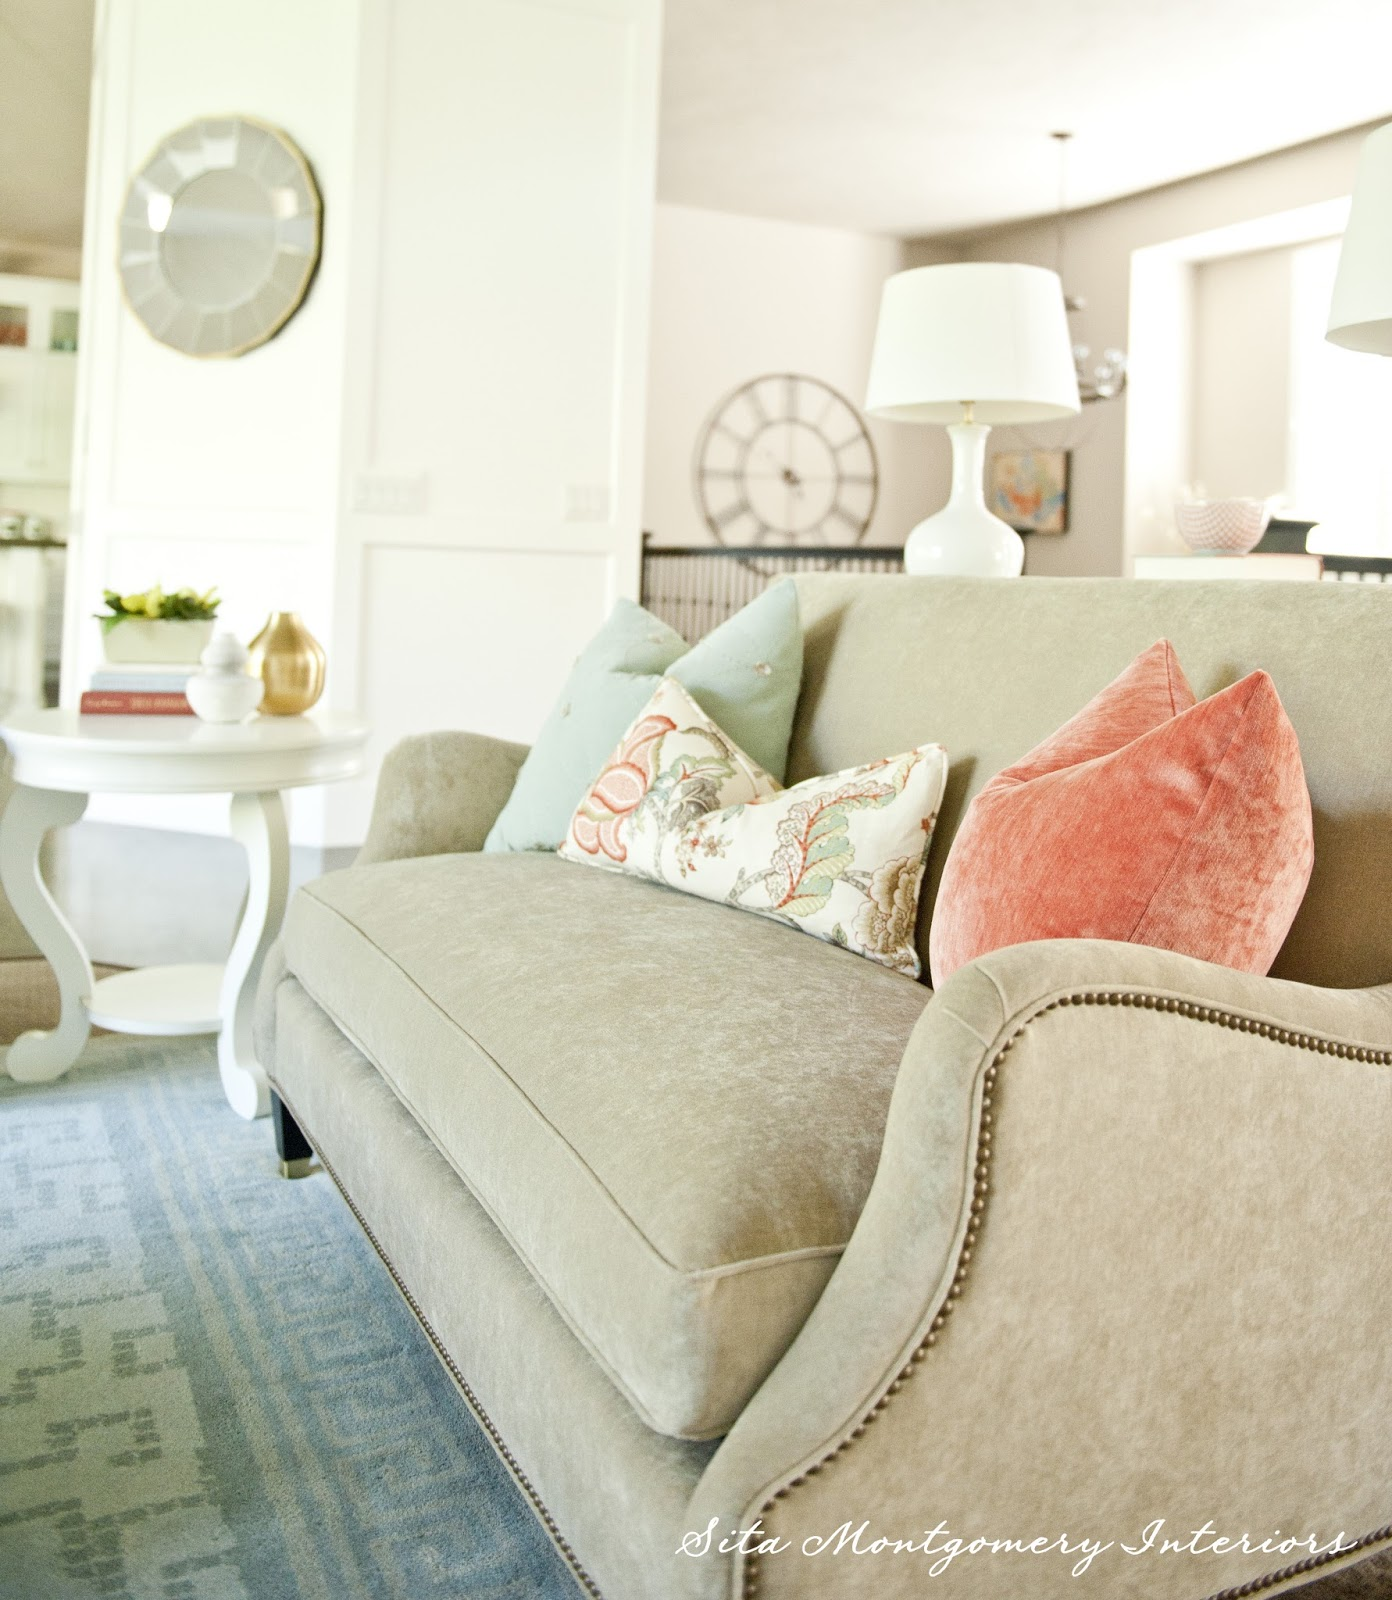 Sita Montgomery Interiors: Sita Montgomery Interiors: My New Home Tour: Great Room